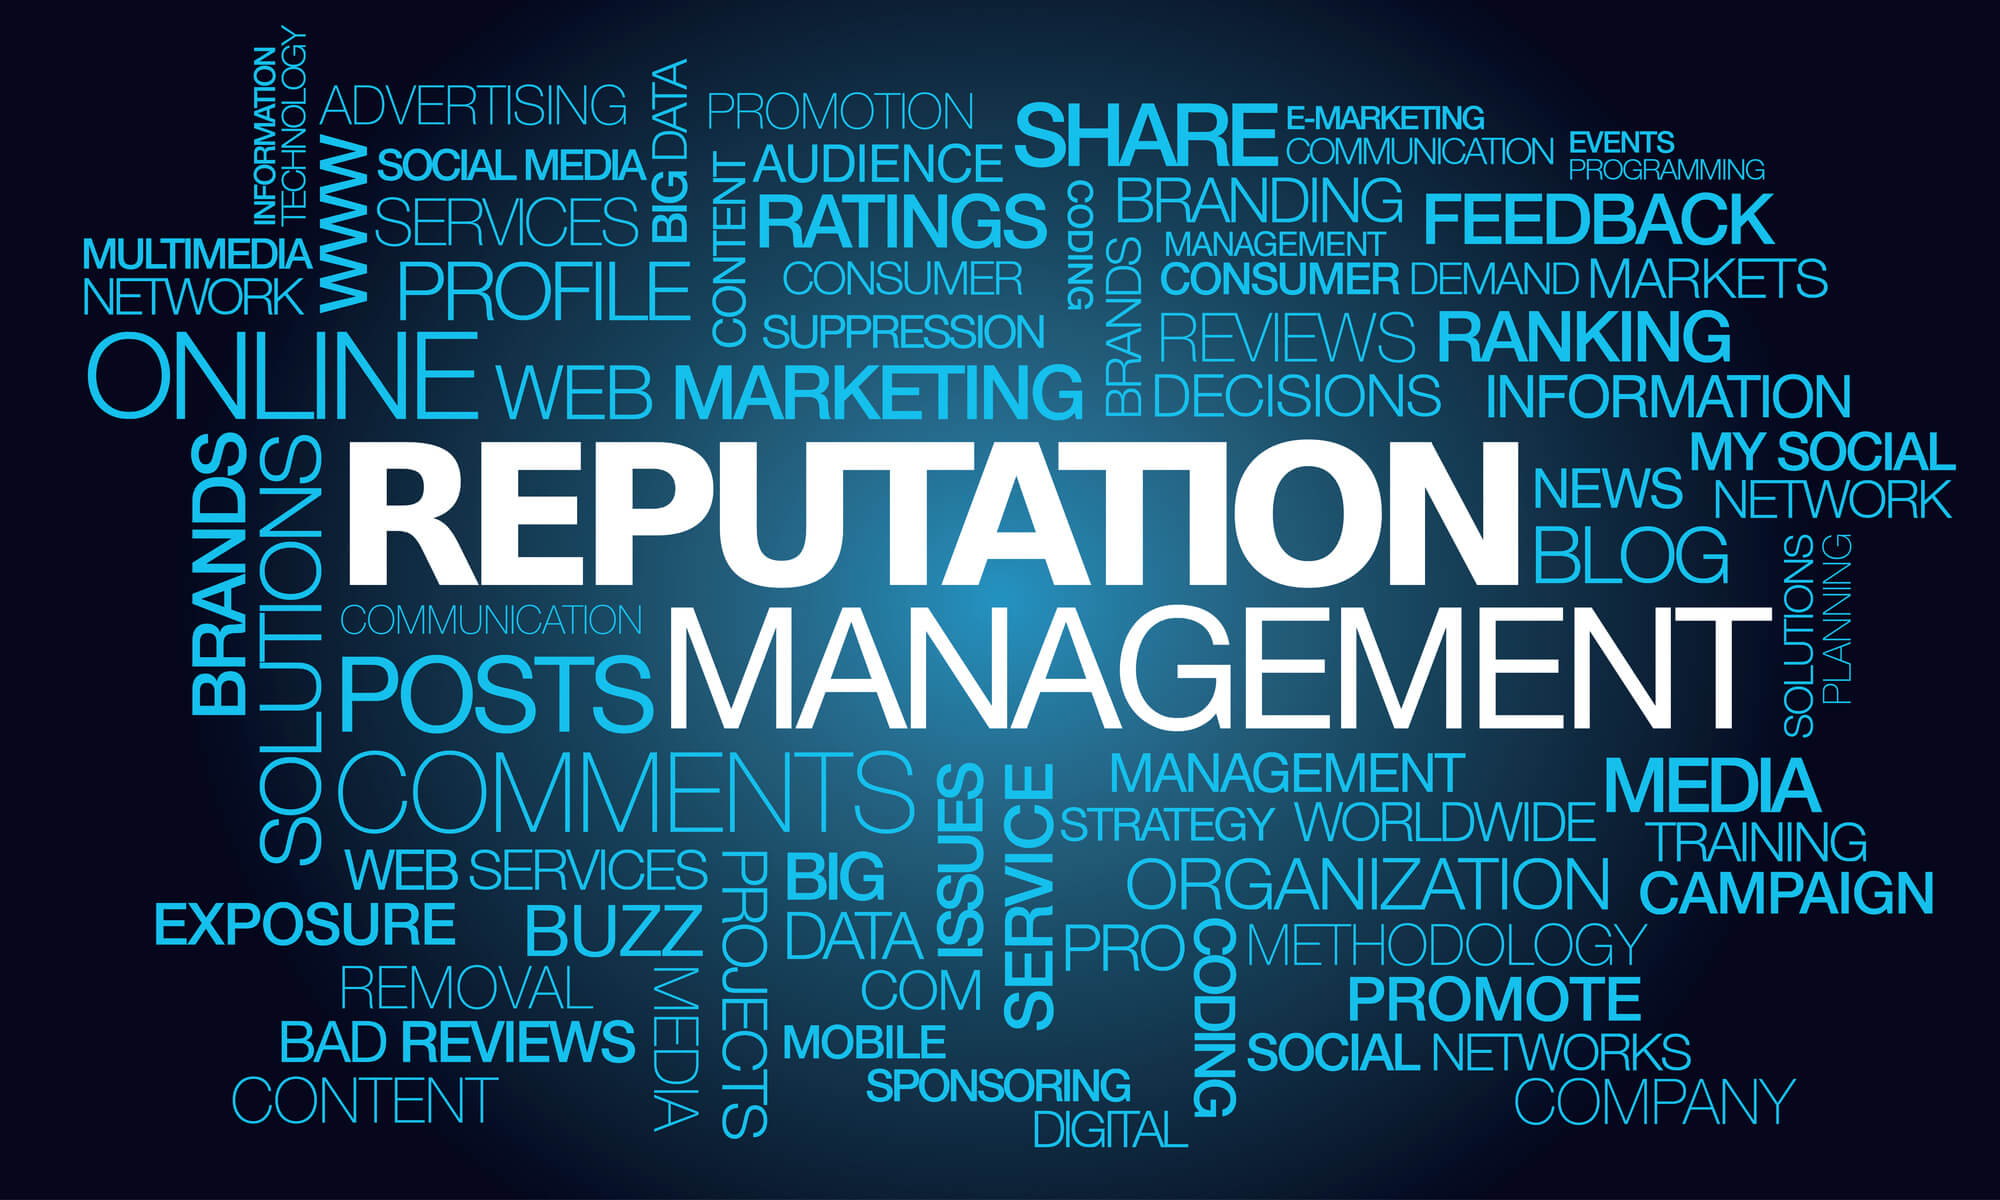 Learn how your brand can benefit from reputation management services today.